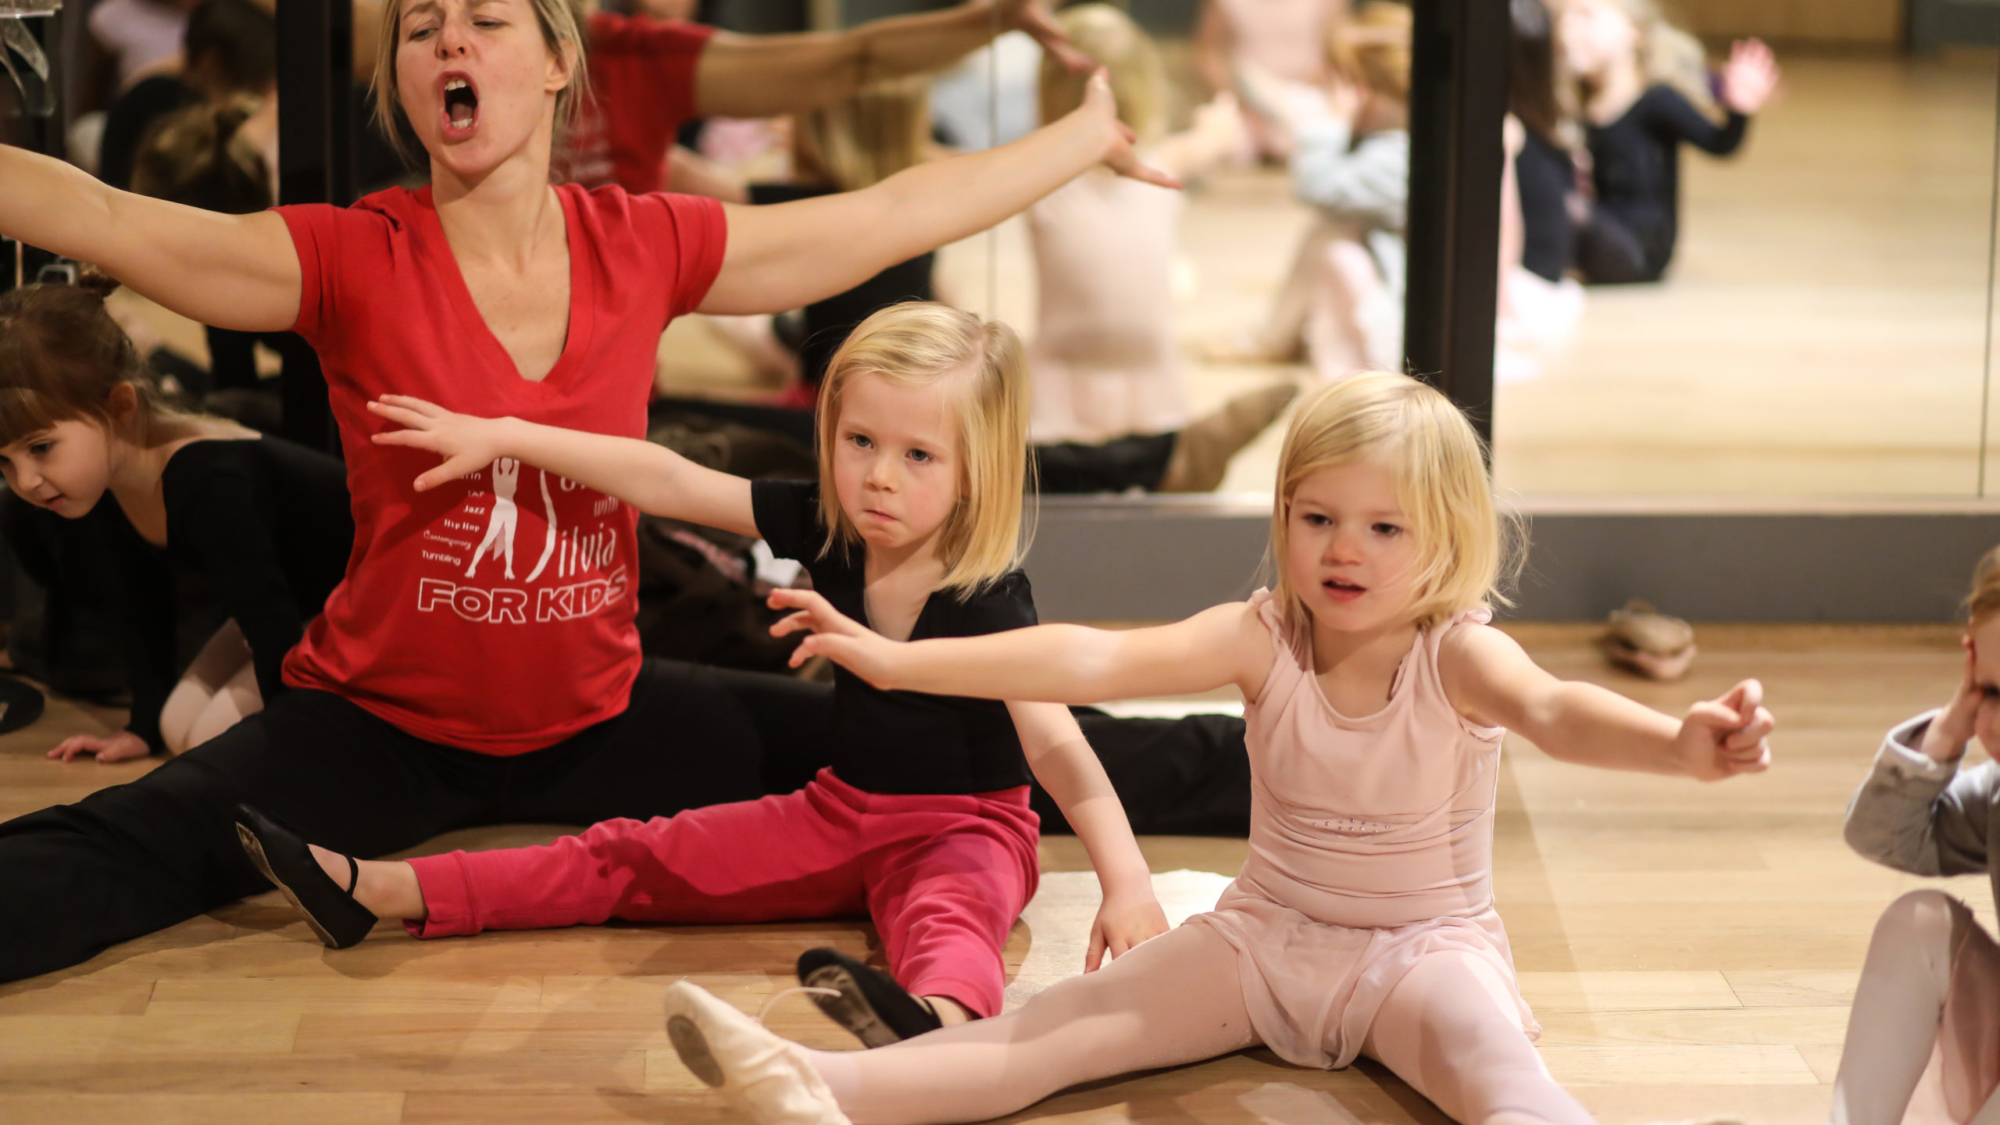 The Salsa With Silvia dance studio offers ballet, tap, jazz, modern, Latin, Hip hop, creative movement, tumbling, Latin and more styles dance classes for kids, summer camp programs, birthday parties and more in DC and Bethesda Row.